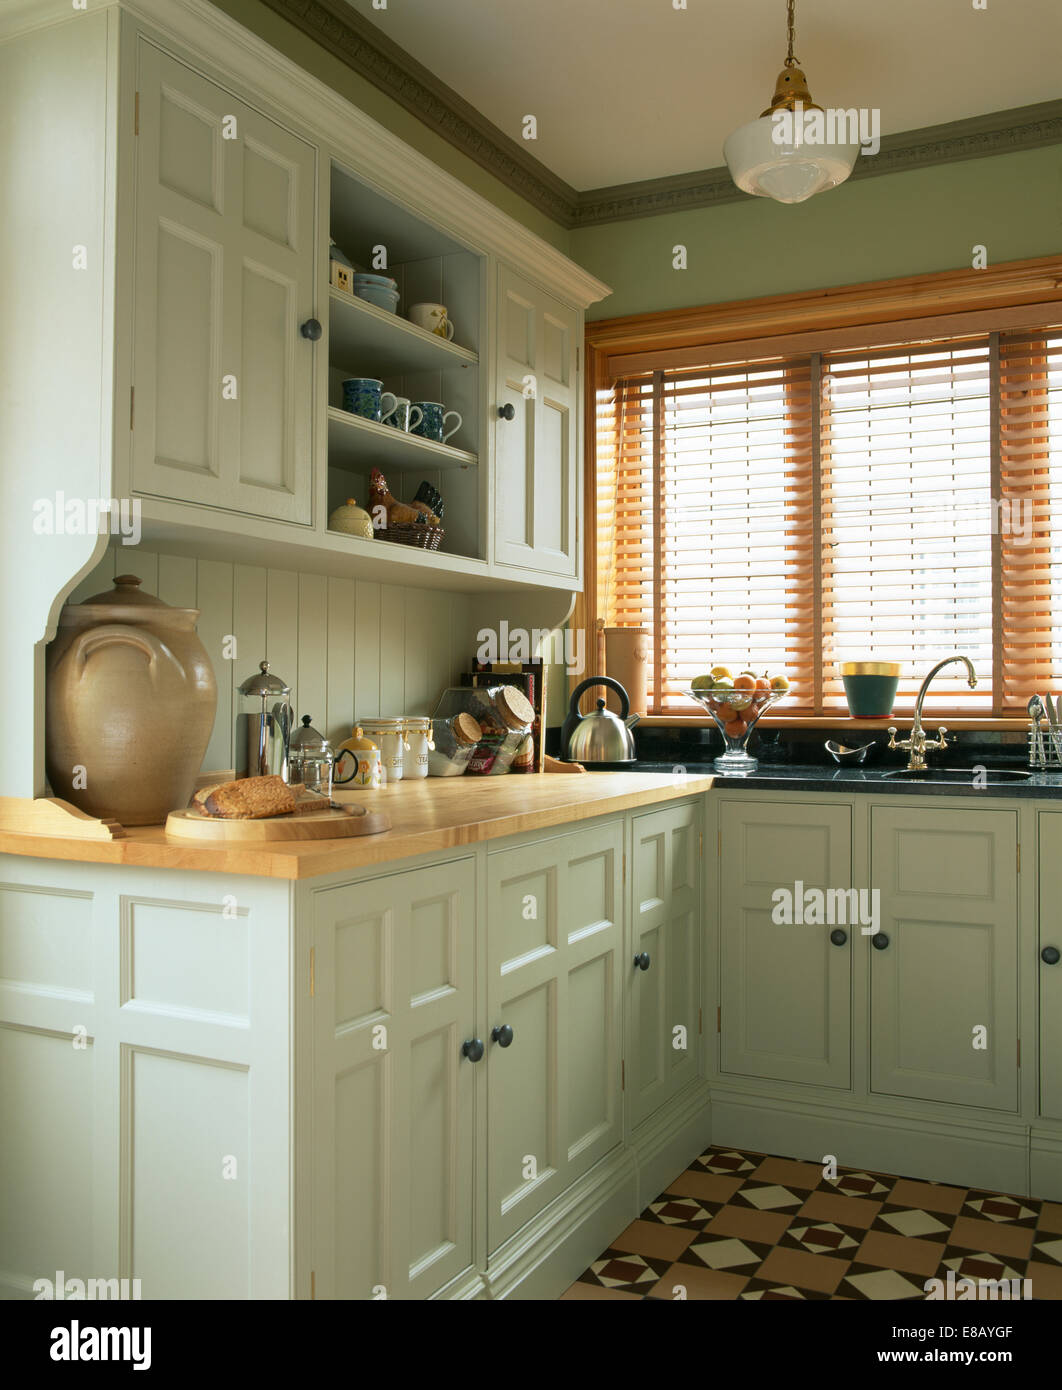 Slatted wooden blind on window in kitchen in traditional ...